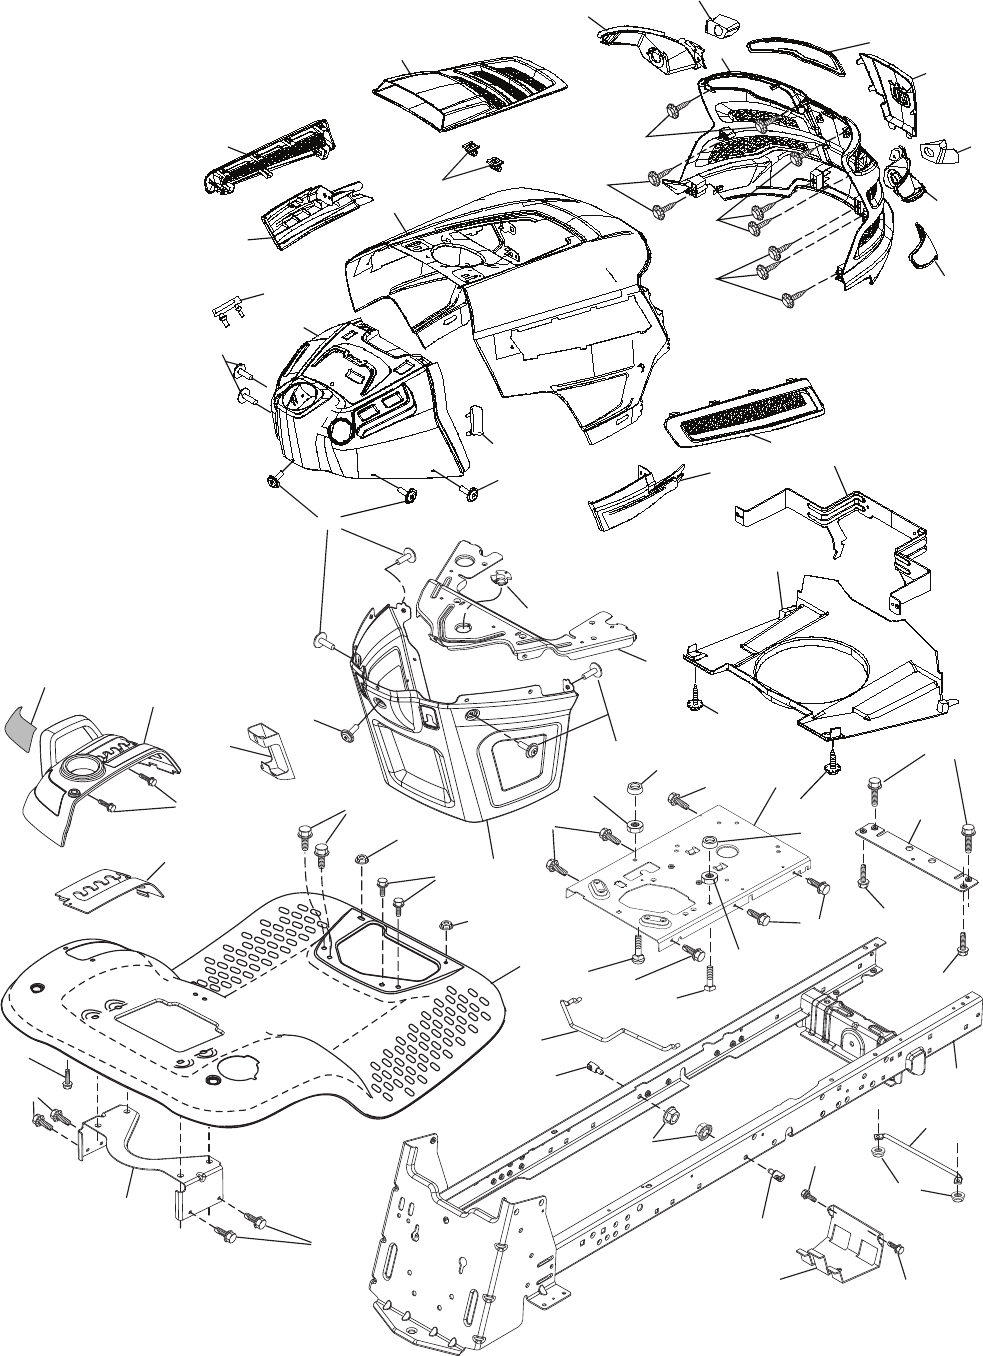 Page 32 of Husqvarna Lawn Mower LGT2554 User Guide